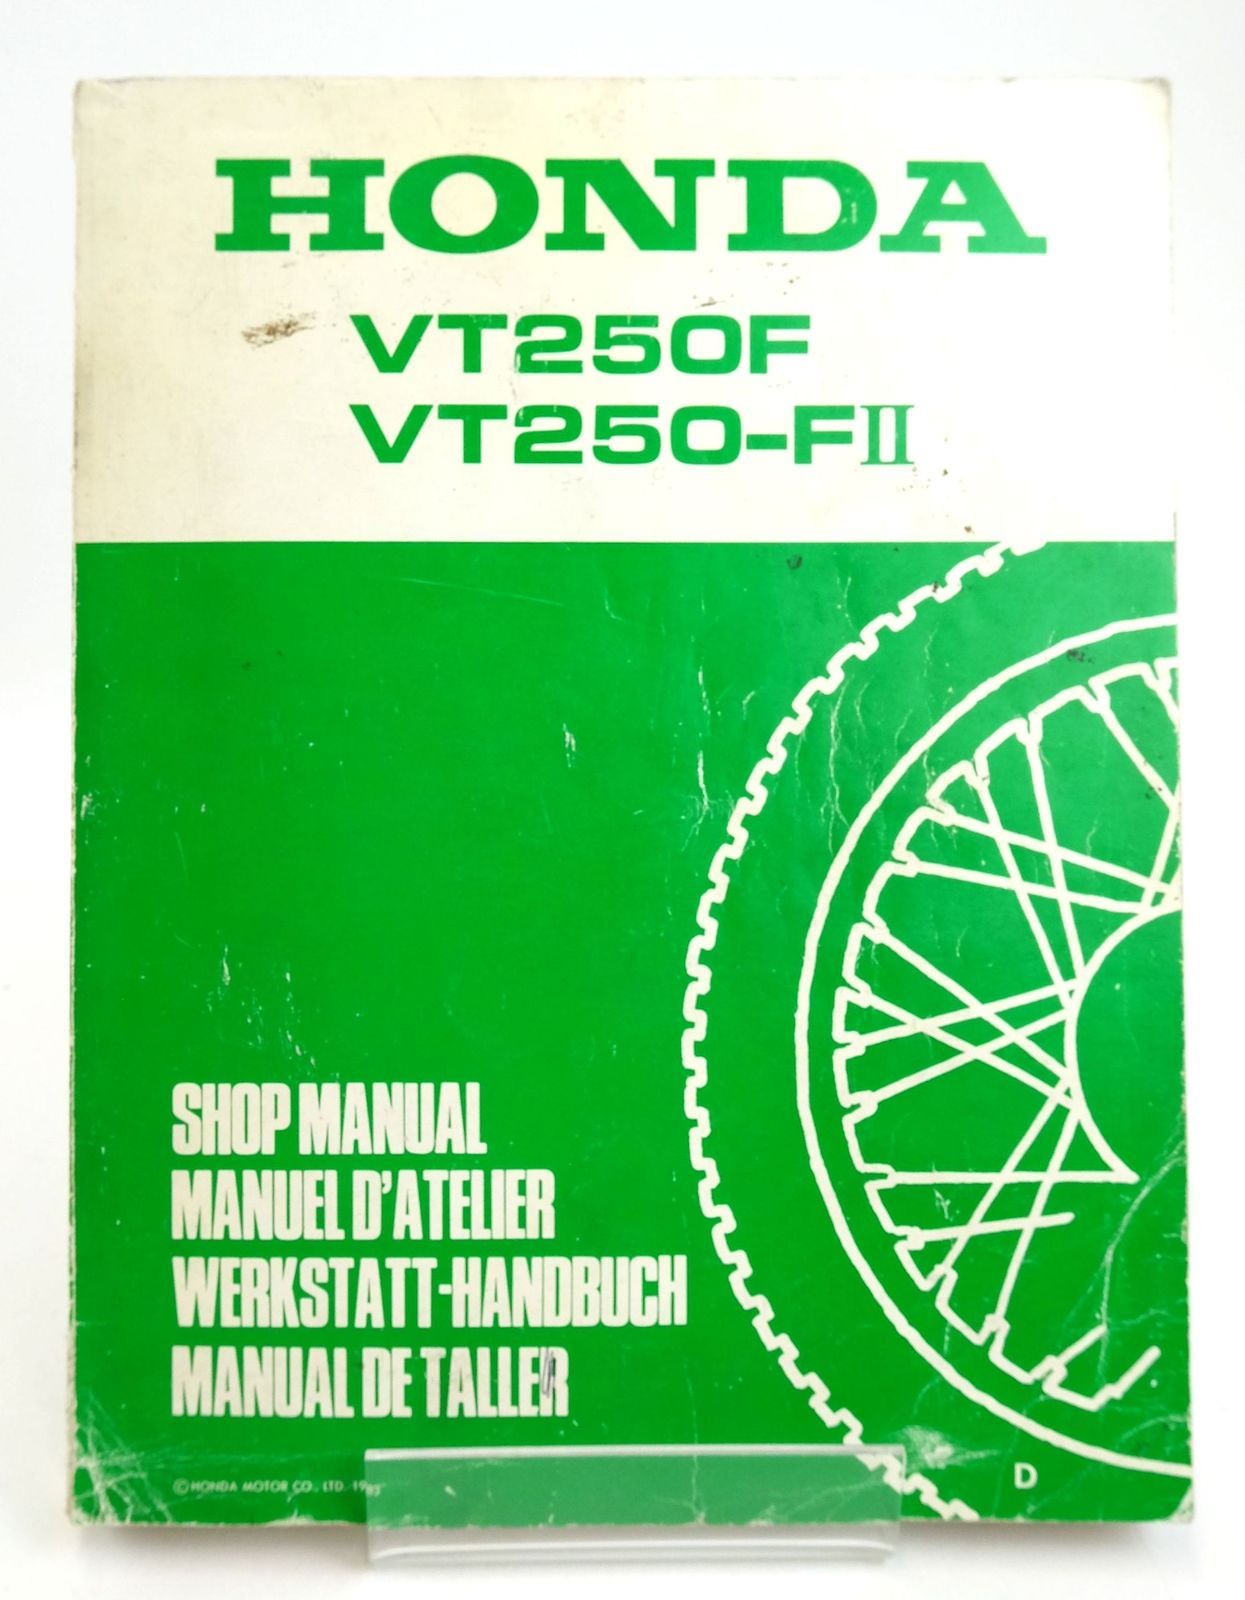 Photo of HONDA VT250F VT250-FII SHOP MANUAL published by Honda Motor Co. Ltd. (STOCK CODE: 1819599)  for sale by Stella & Rose's Books